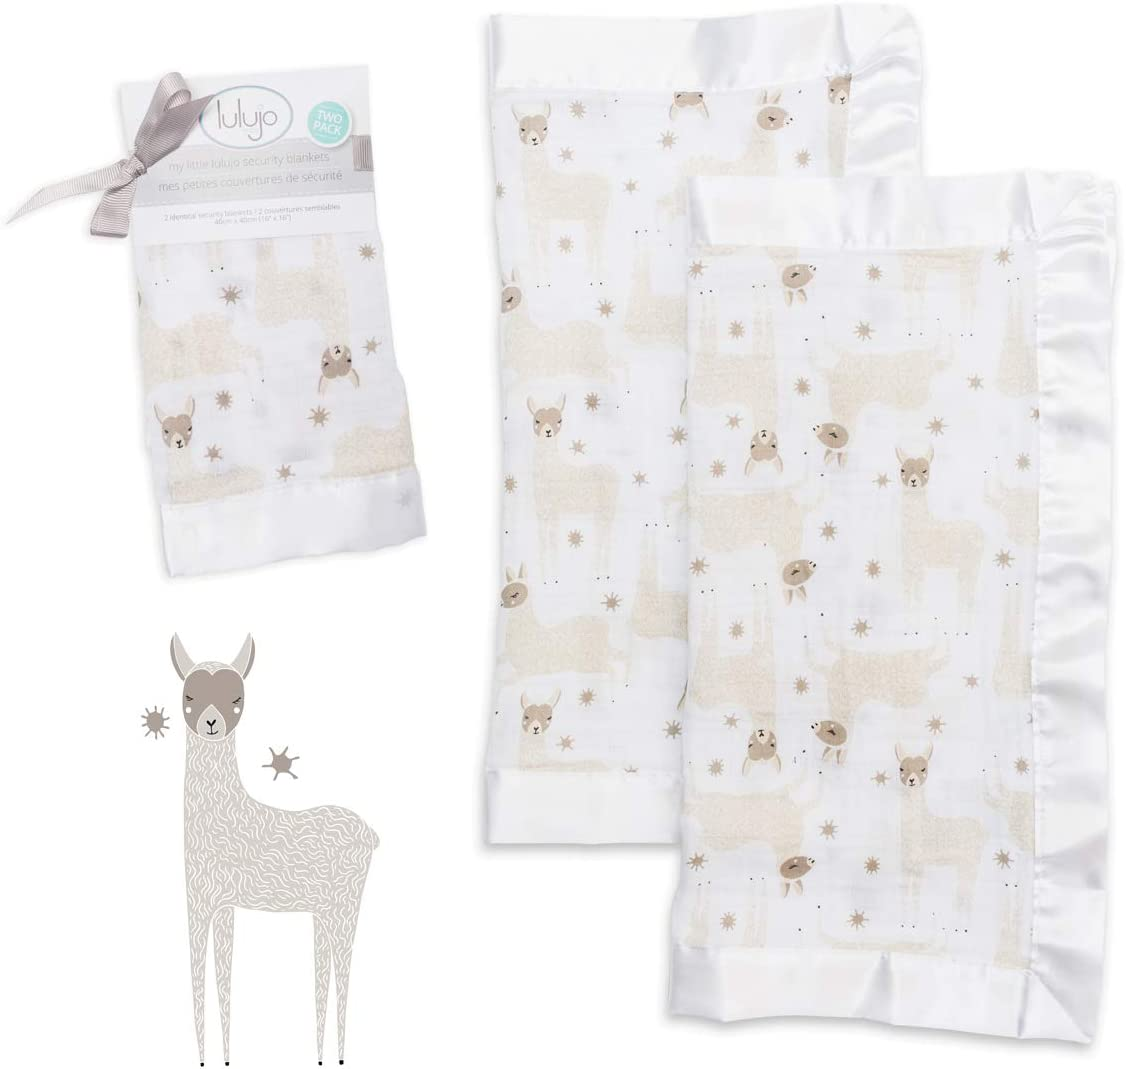 Unisex Softest Breathable Cotton Muslin Security Blanket with Silky Satin Trim 16in by 16 in Llama Neutral Comforting Blanket for Girls /& Boys lulujo Baby Security Lovie Blankets